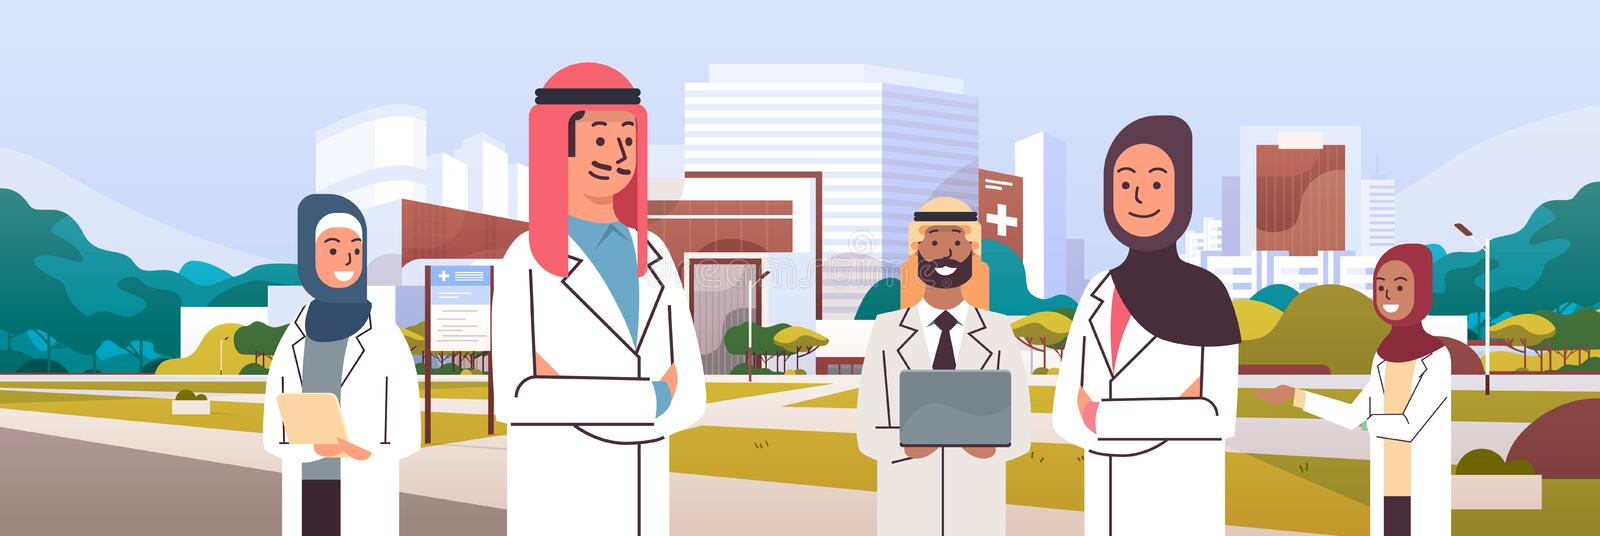 Group of arabic doctors team in uniform standing together in front of hospital building medical clinic exterior vector illustration